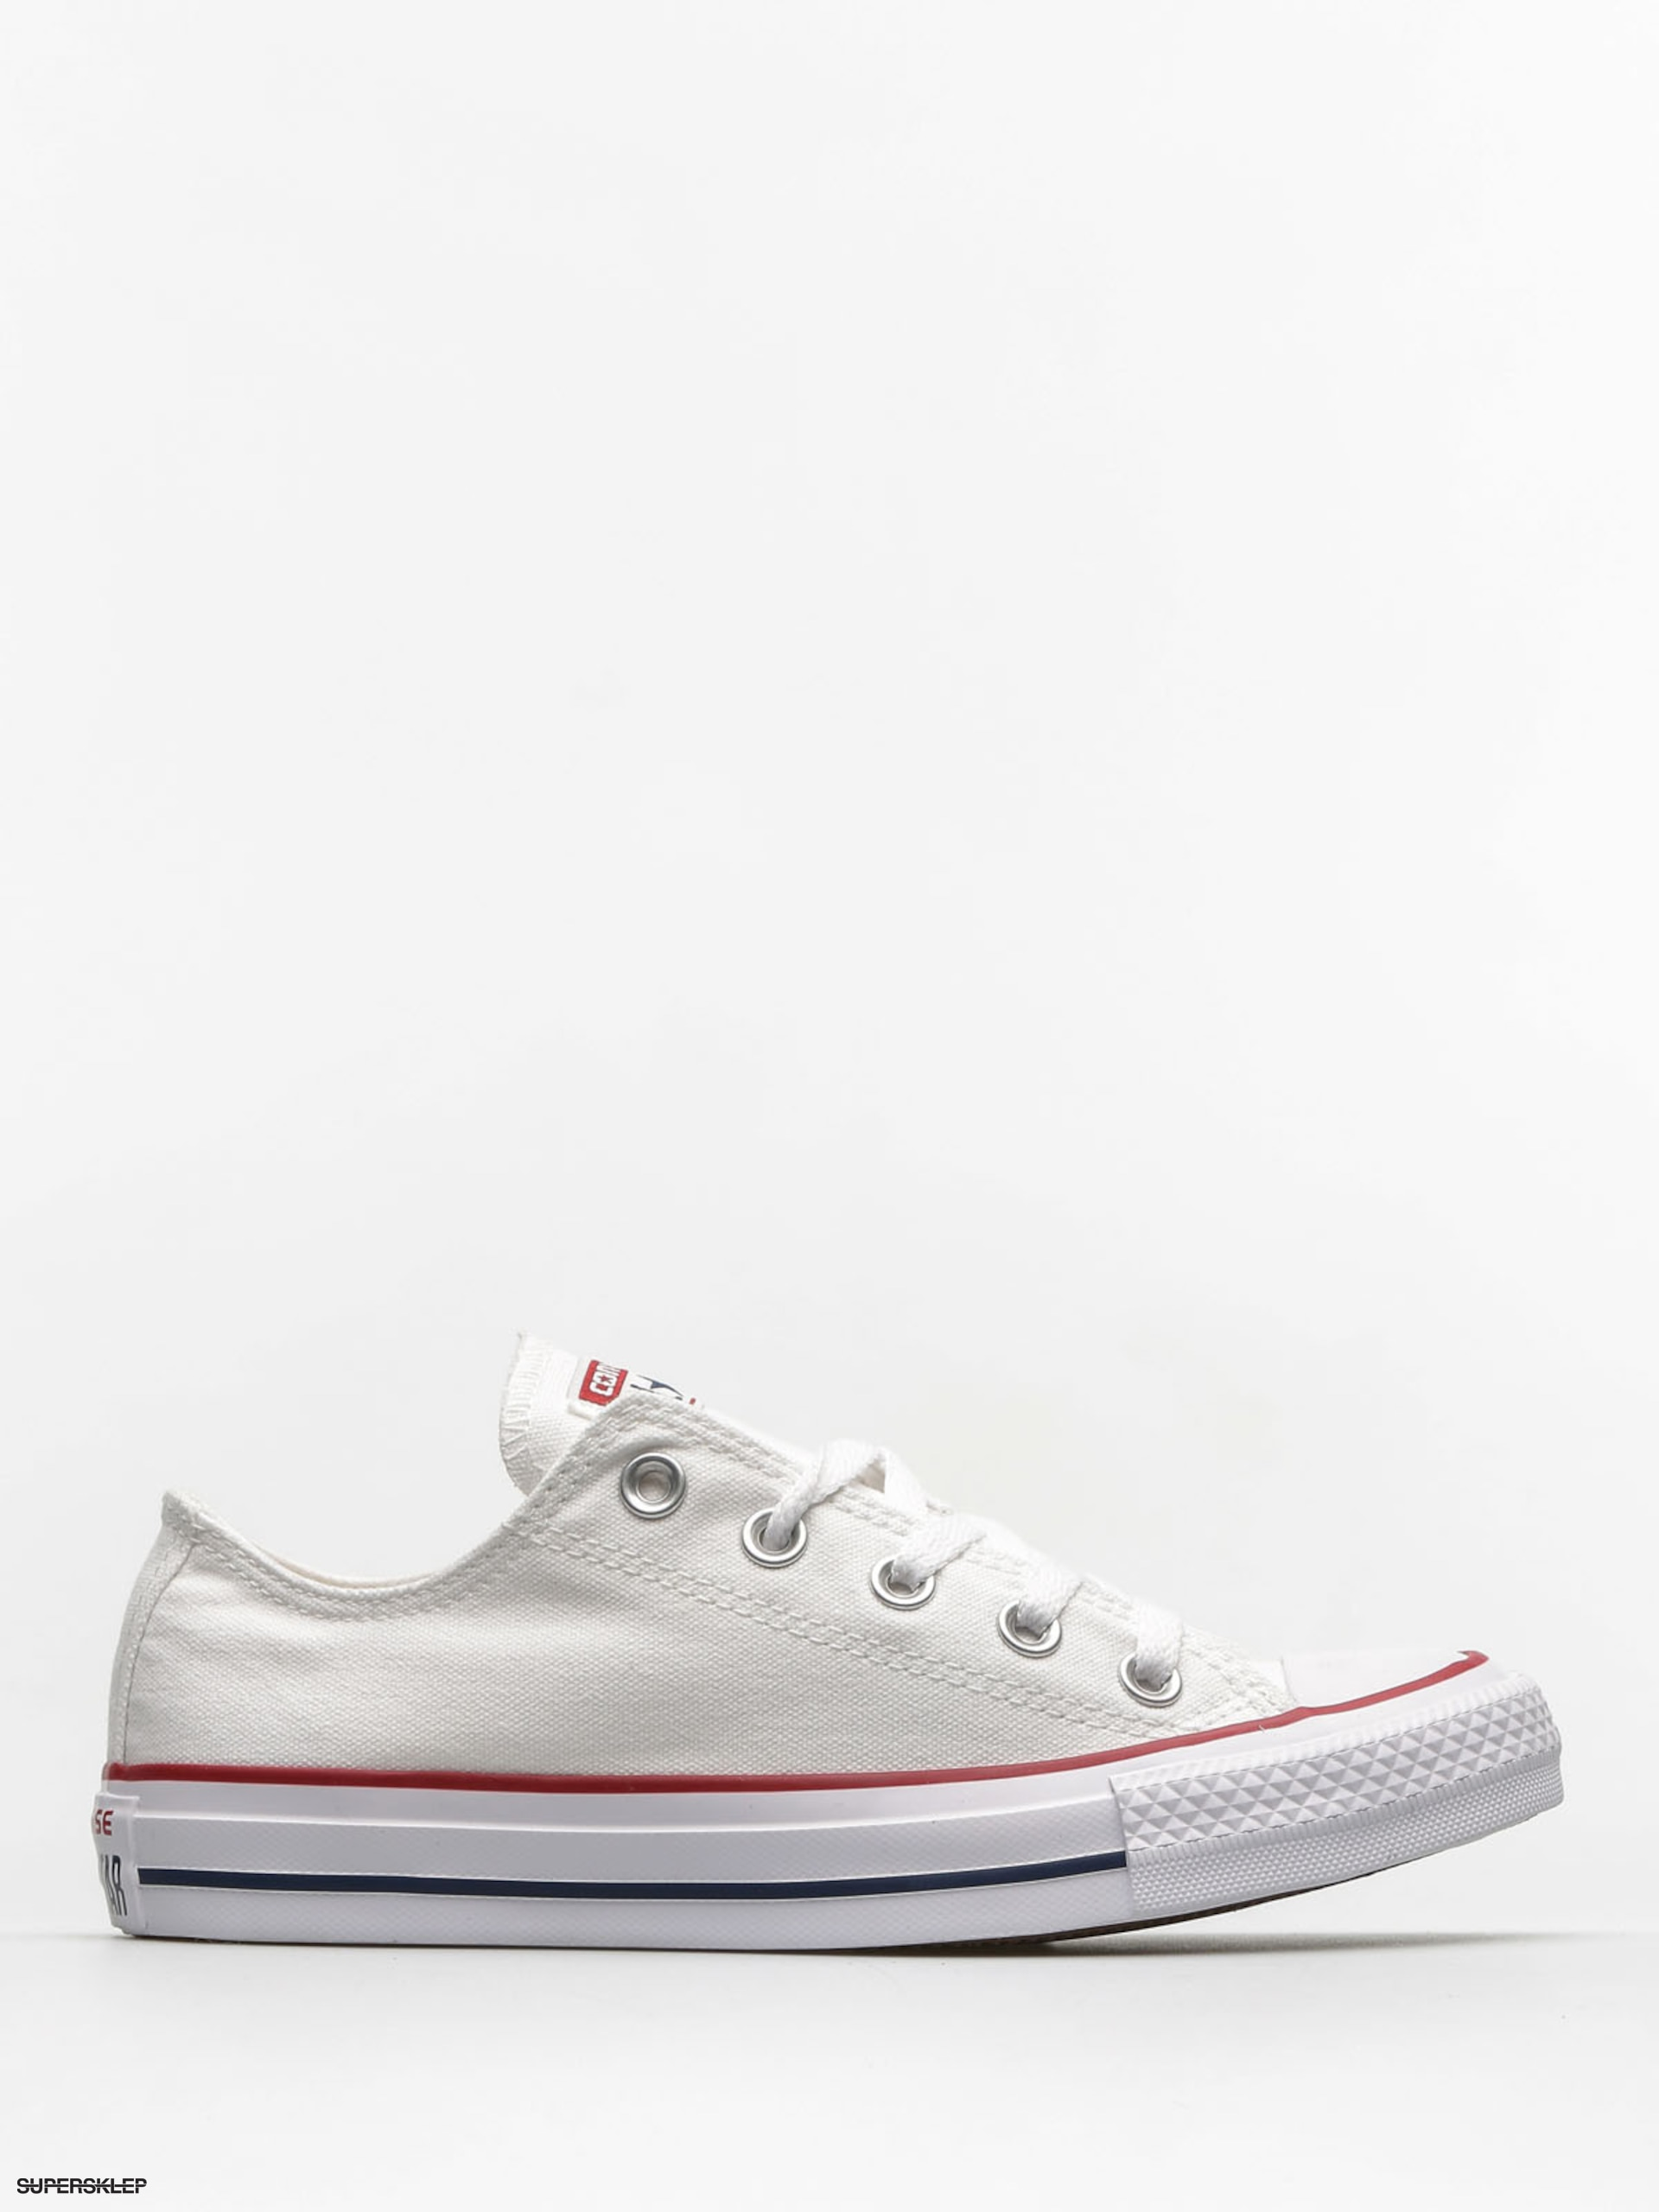 Tenisky Converse Chuck Taylor All Star OX (optic white) 0bc649d0223